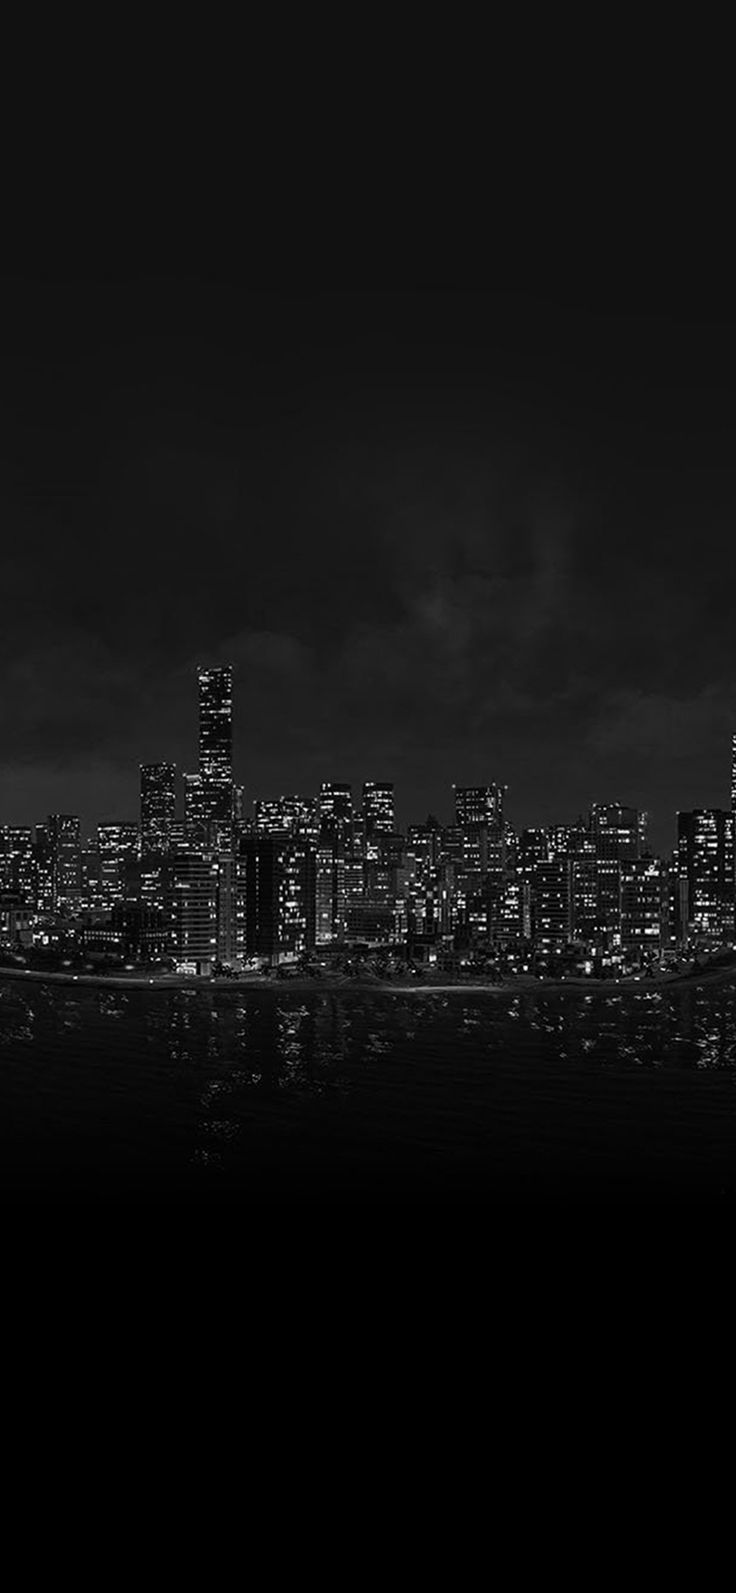 Watchdog Night City Light View From Sea  iPhone  X  wallpaper     Watchdog Night City Light View From Sea  iPhone  X  wallpaper   iPhone X  Wallpapers   Pinterest   Night city  City lights and Wallpaper